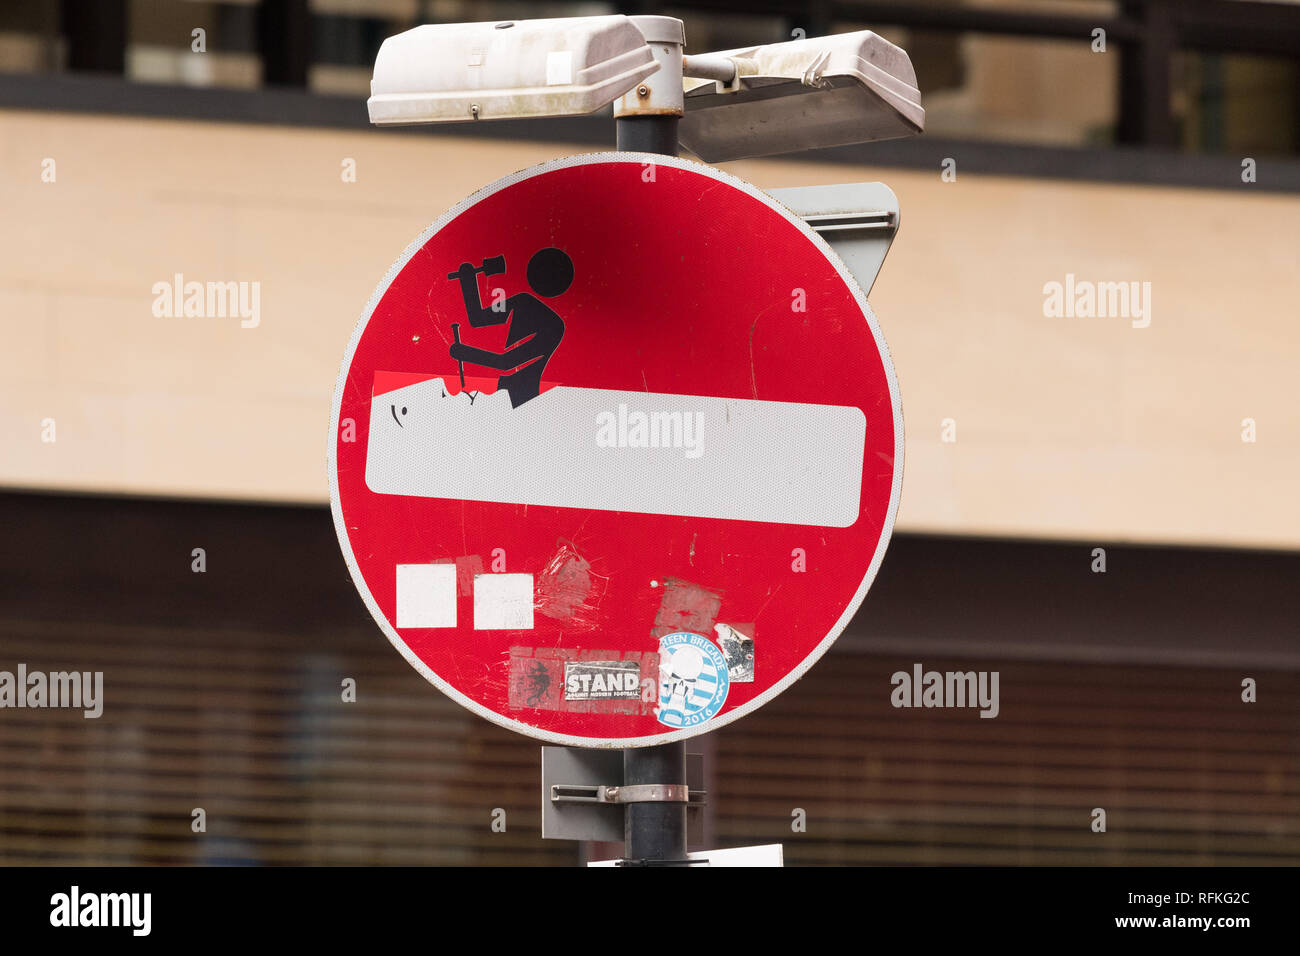 Clet Abraham art on street sign in the merchant city, area of Glasgow, Scotland, UK - Stock Image